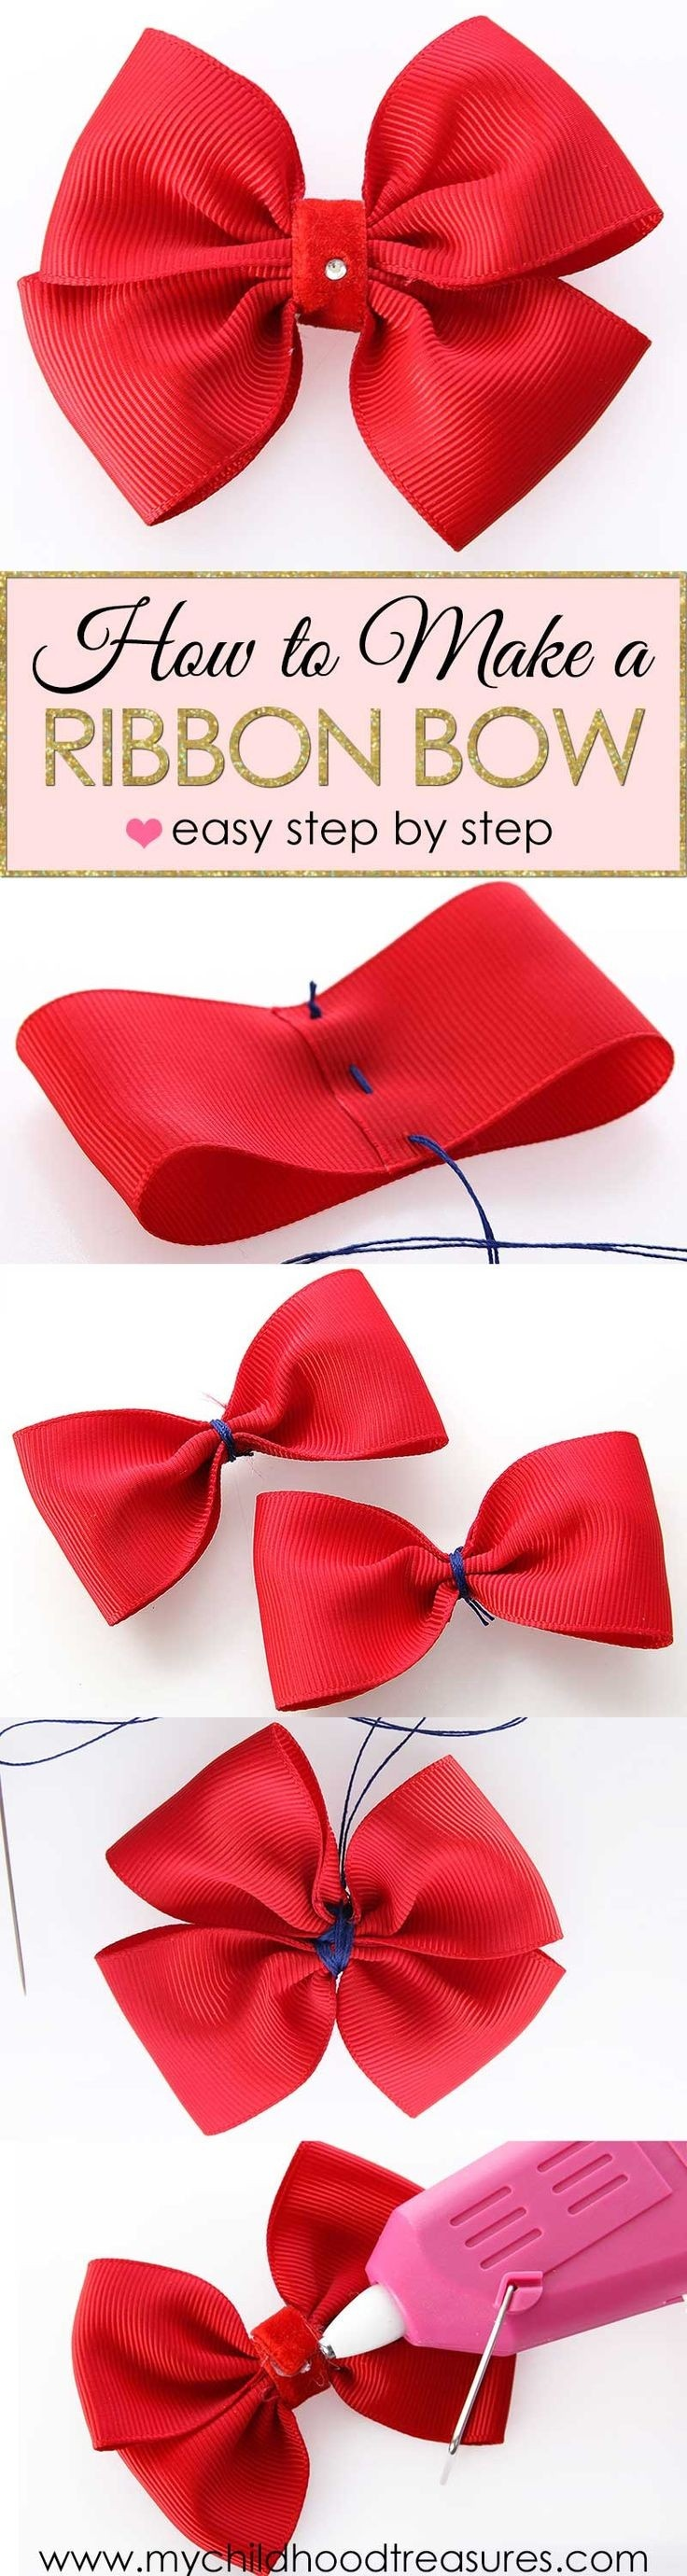 How To Make A Hair Bow With Ribbon Quora